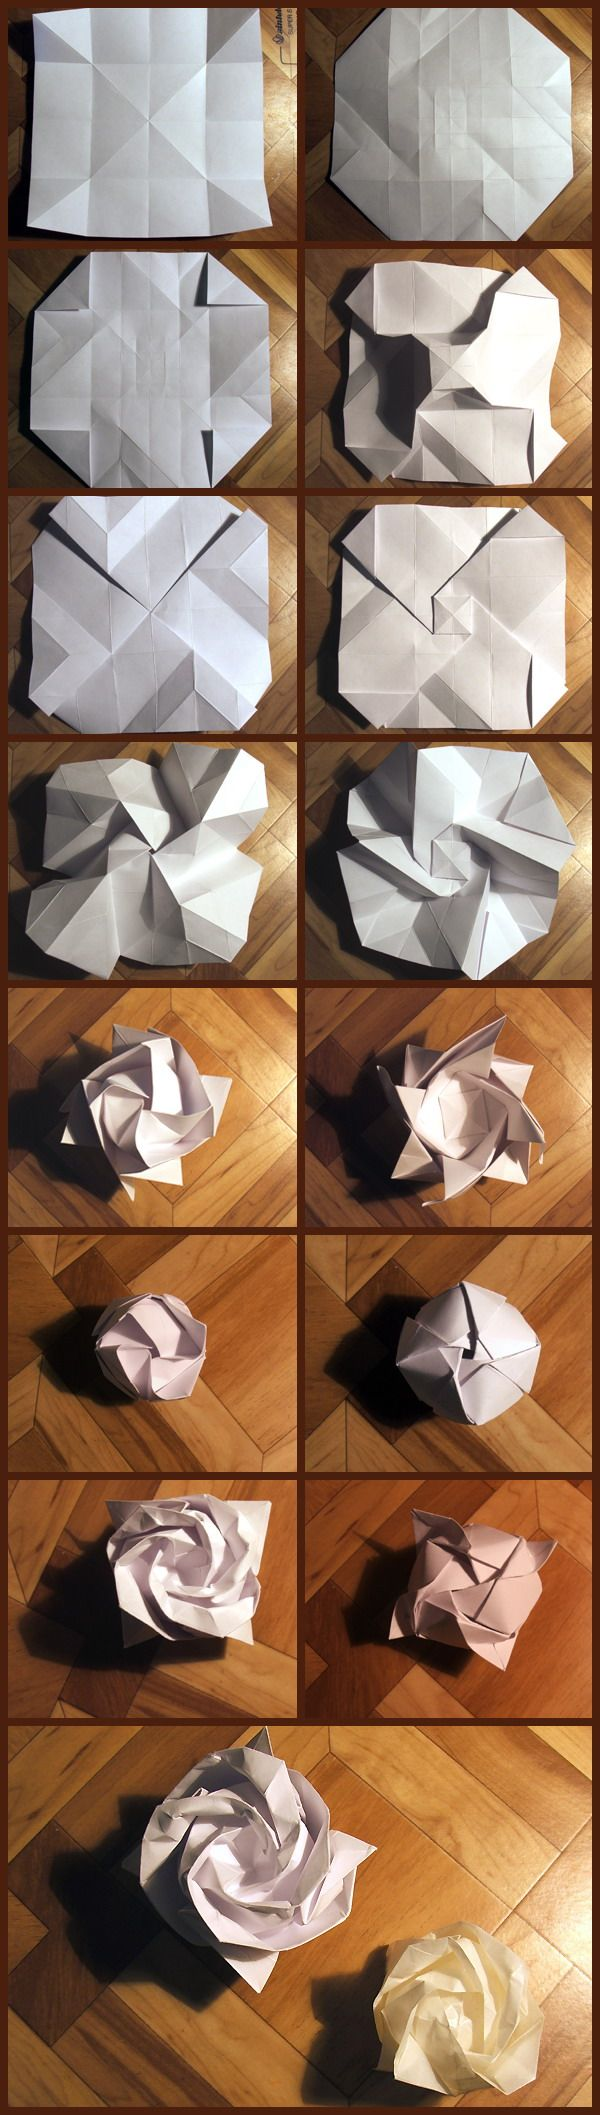 171 Best Origami Images On Pinterest Crafts Paper Snowflakes And